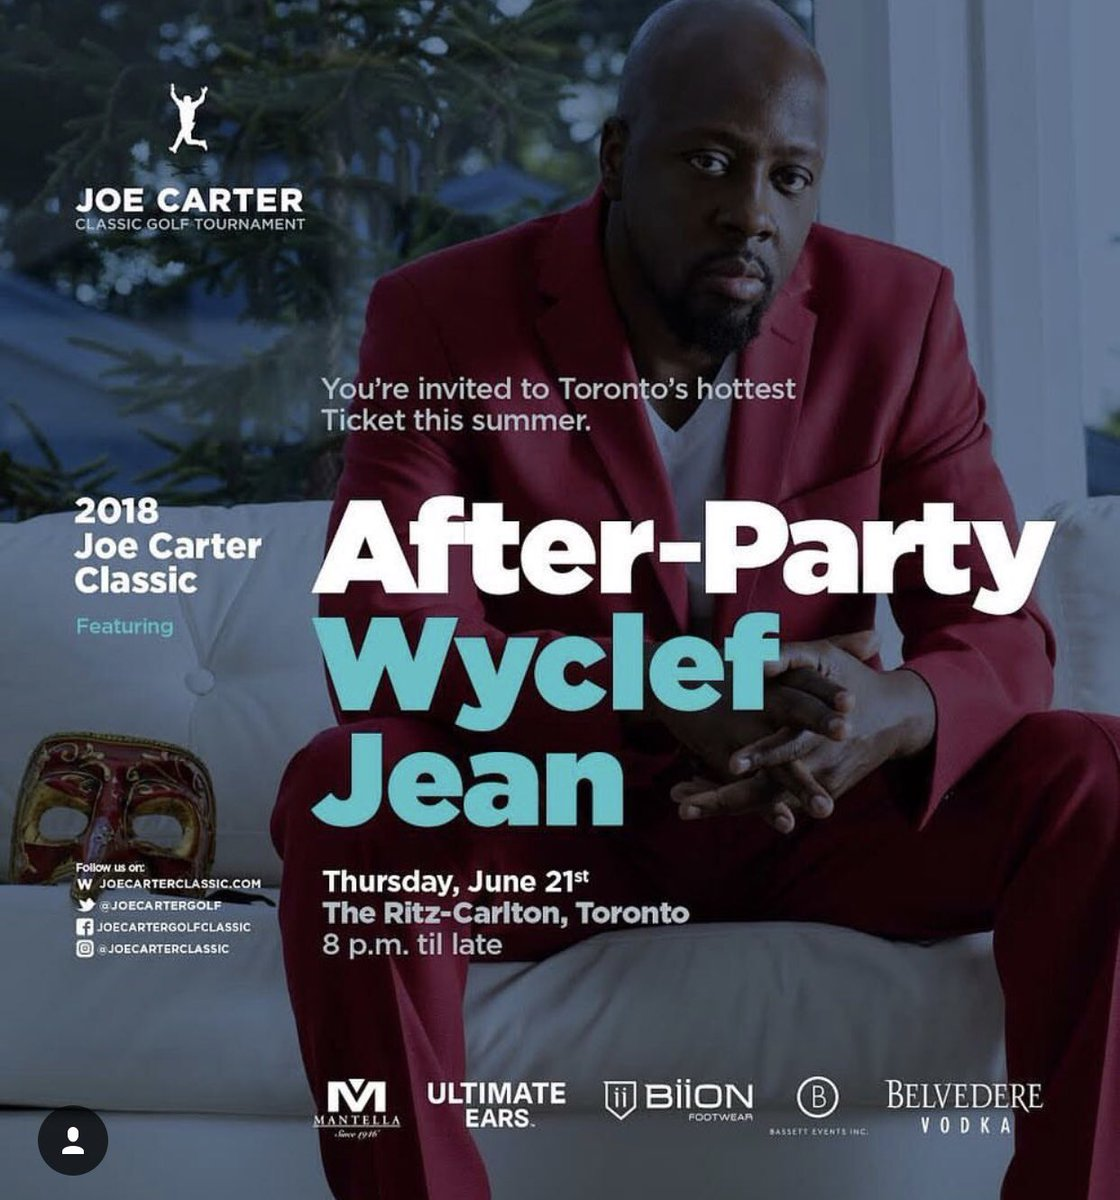 Looking forward to performing @JoeCarterGolf after party presented by @BiionFootwear @SylviaMantella on THURSDAY AT 8 PM @RitzCarlton <br>http://pic.twitter.com/7ae0yUAO3R